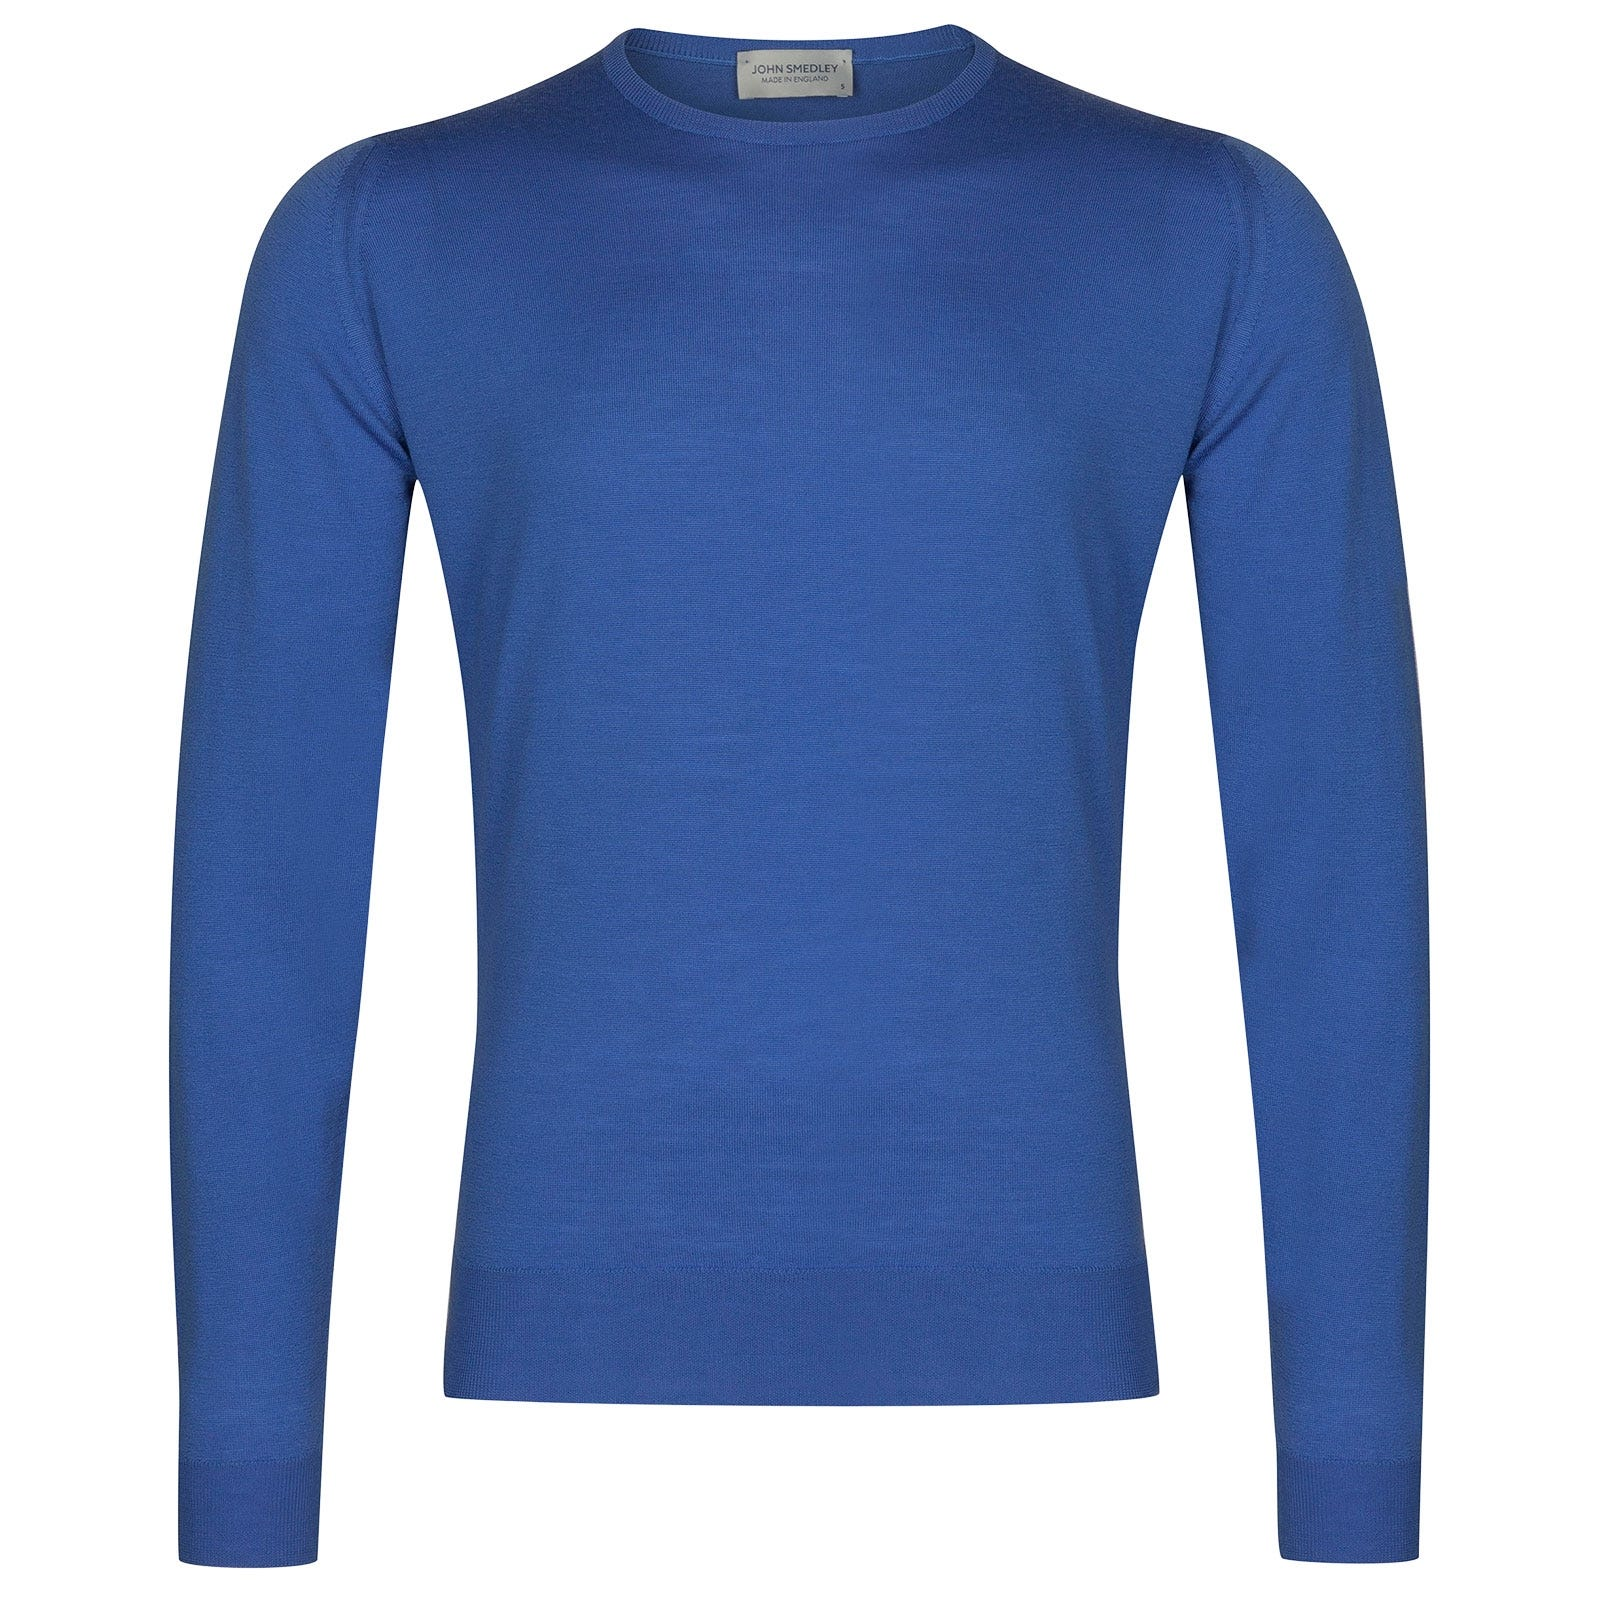 John Smedley Lundy Merino Wool Pullover in Chambray Blue-L